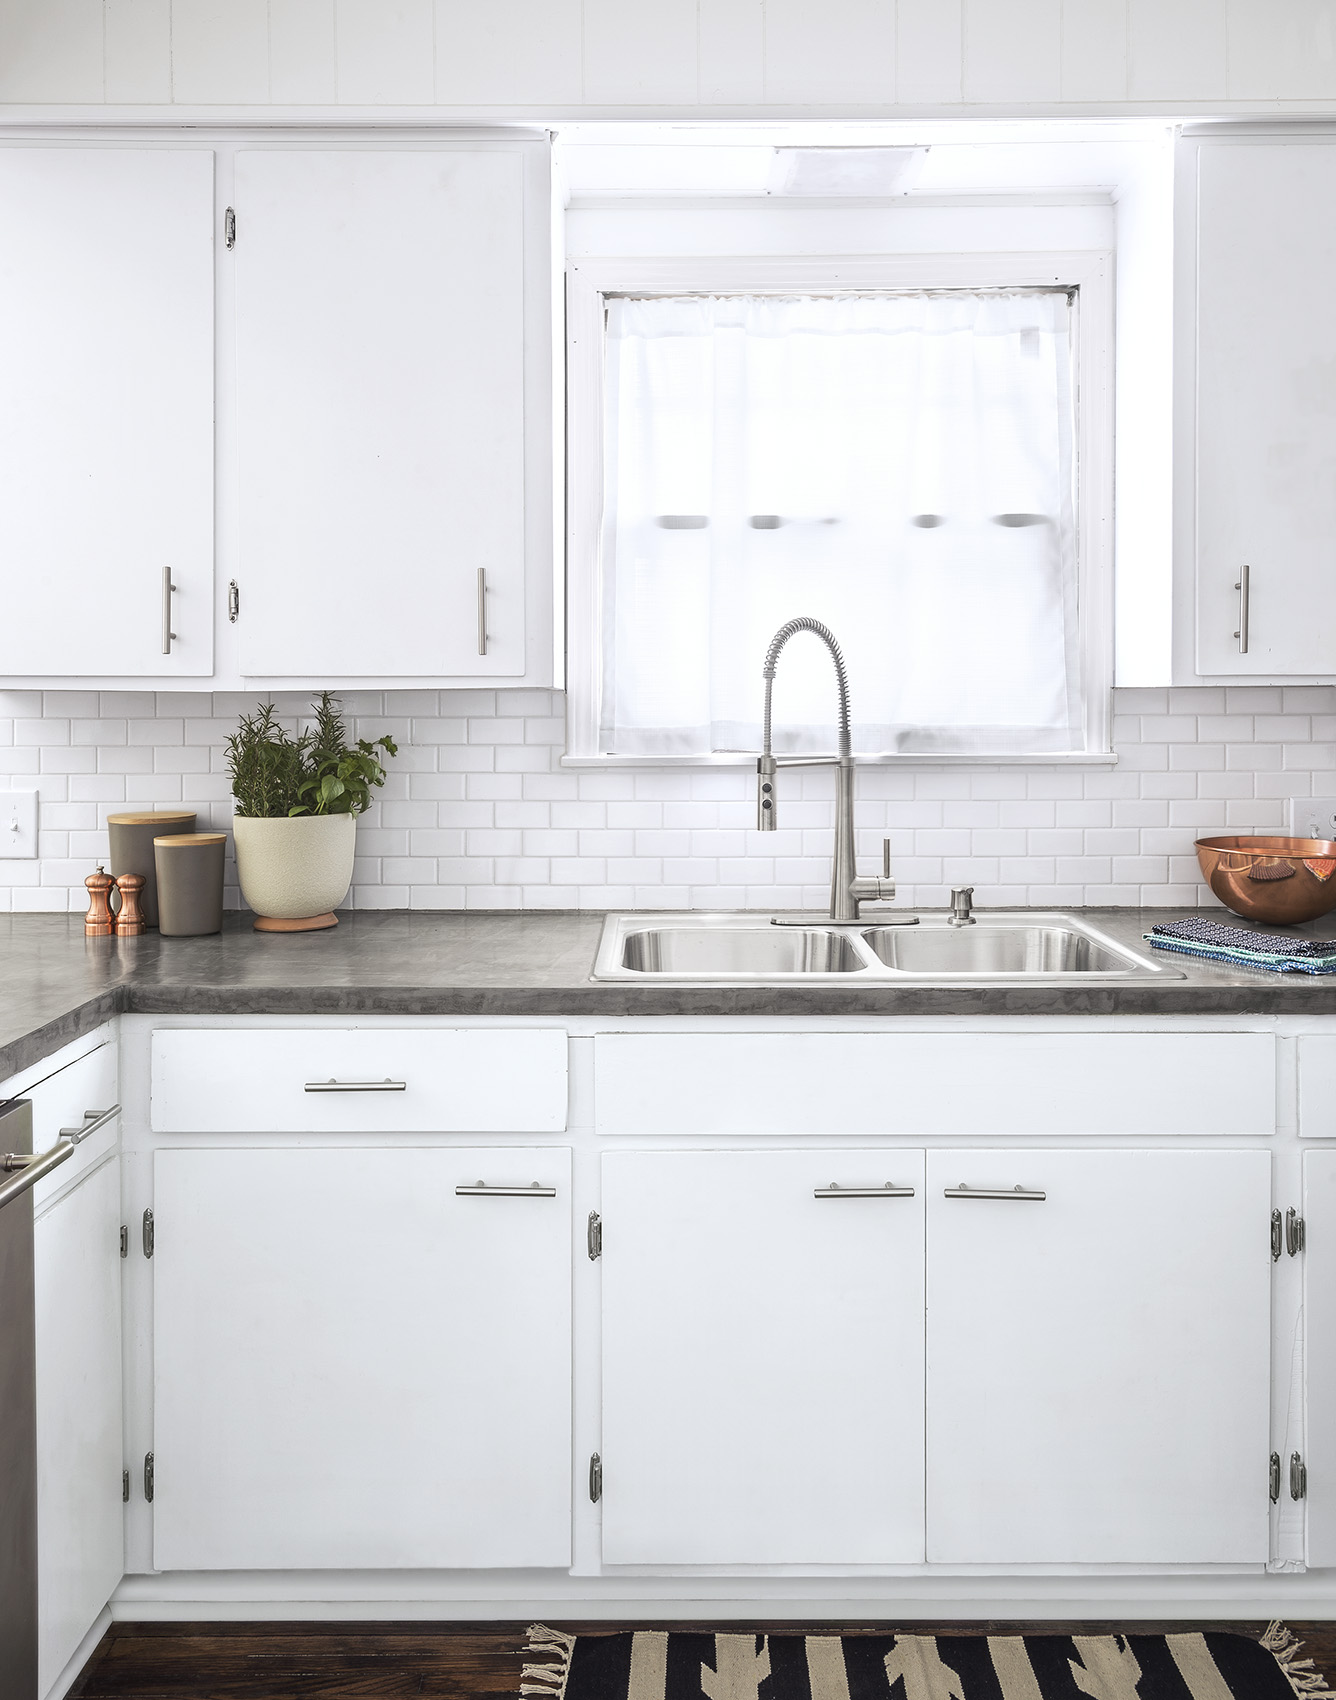 4 Kitchen Renovation Ideas Real Simple Readers Swear By  Real Simple